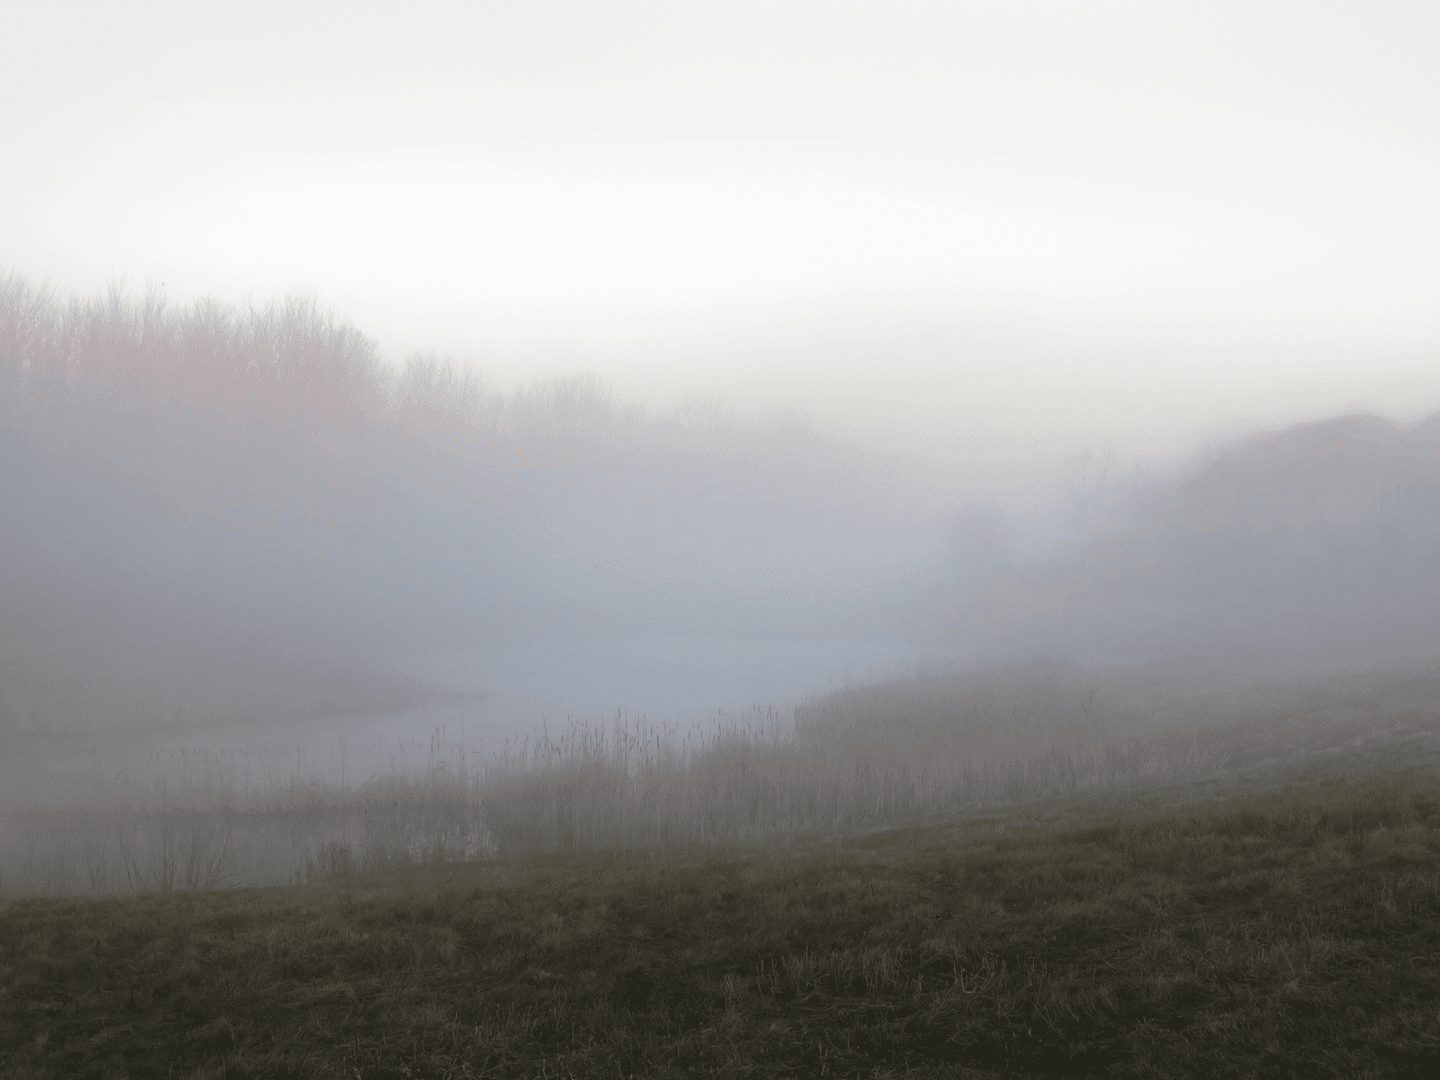 Steven d foster photographs the departing landscape website image 4 creation early morning january 21 2017 looking north over the meadows north pond the houses on the right are shrouded in fog biocorpaavc